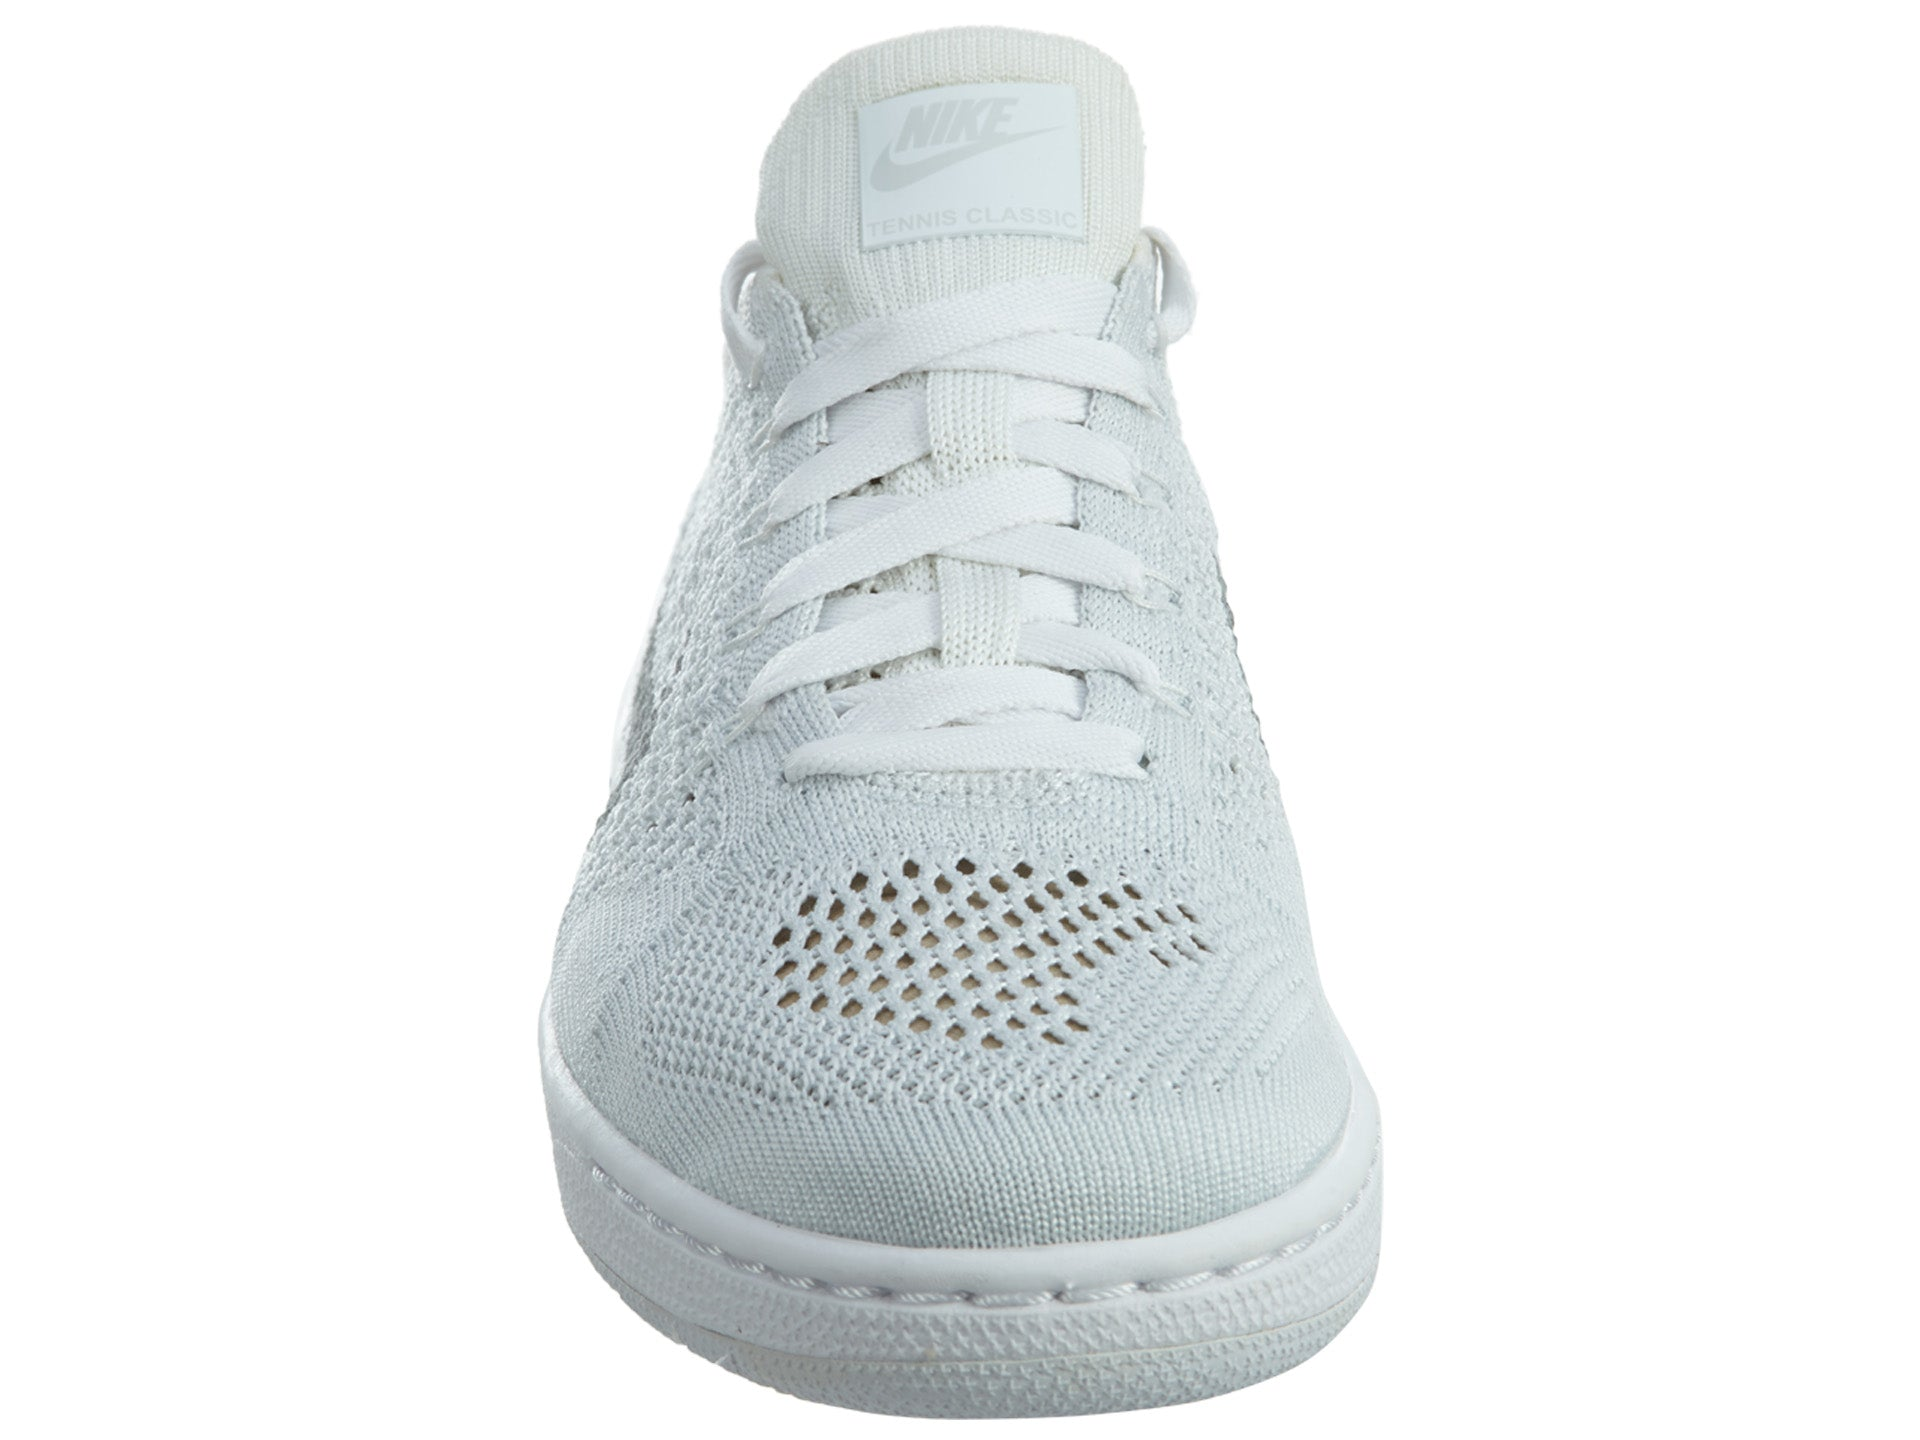 sports shoes 828f4 d78dc Nike Tennis Classic Ultra Flyknit Womens Style   833860 · NIKE   Athletic  Shoes   Sneakers